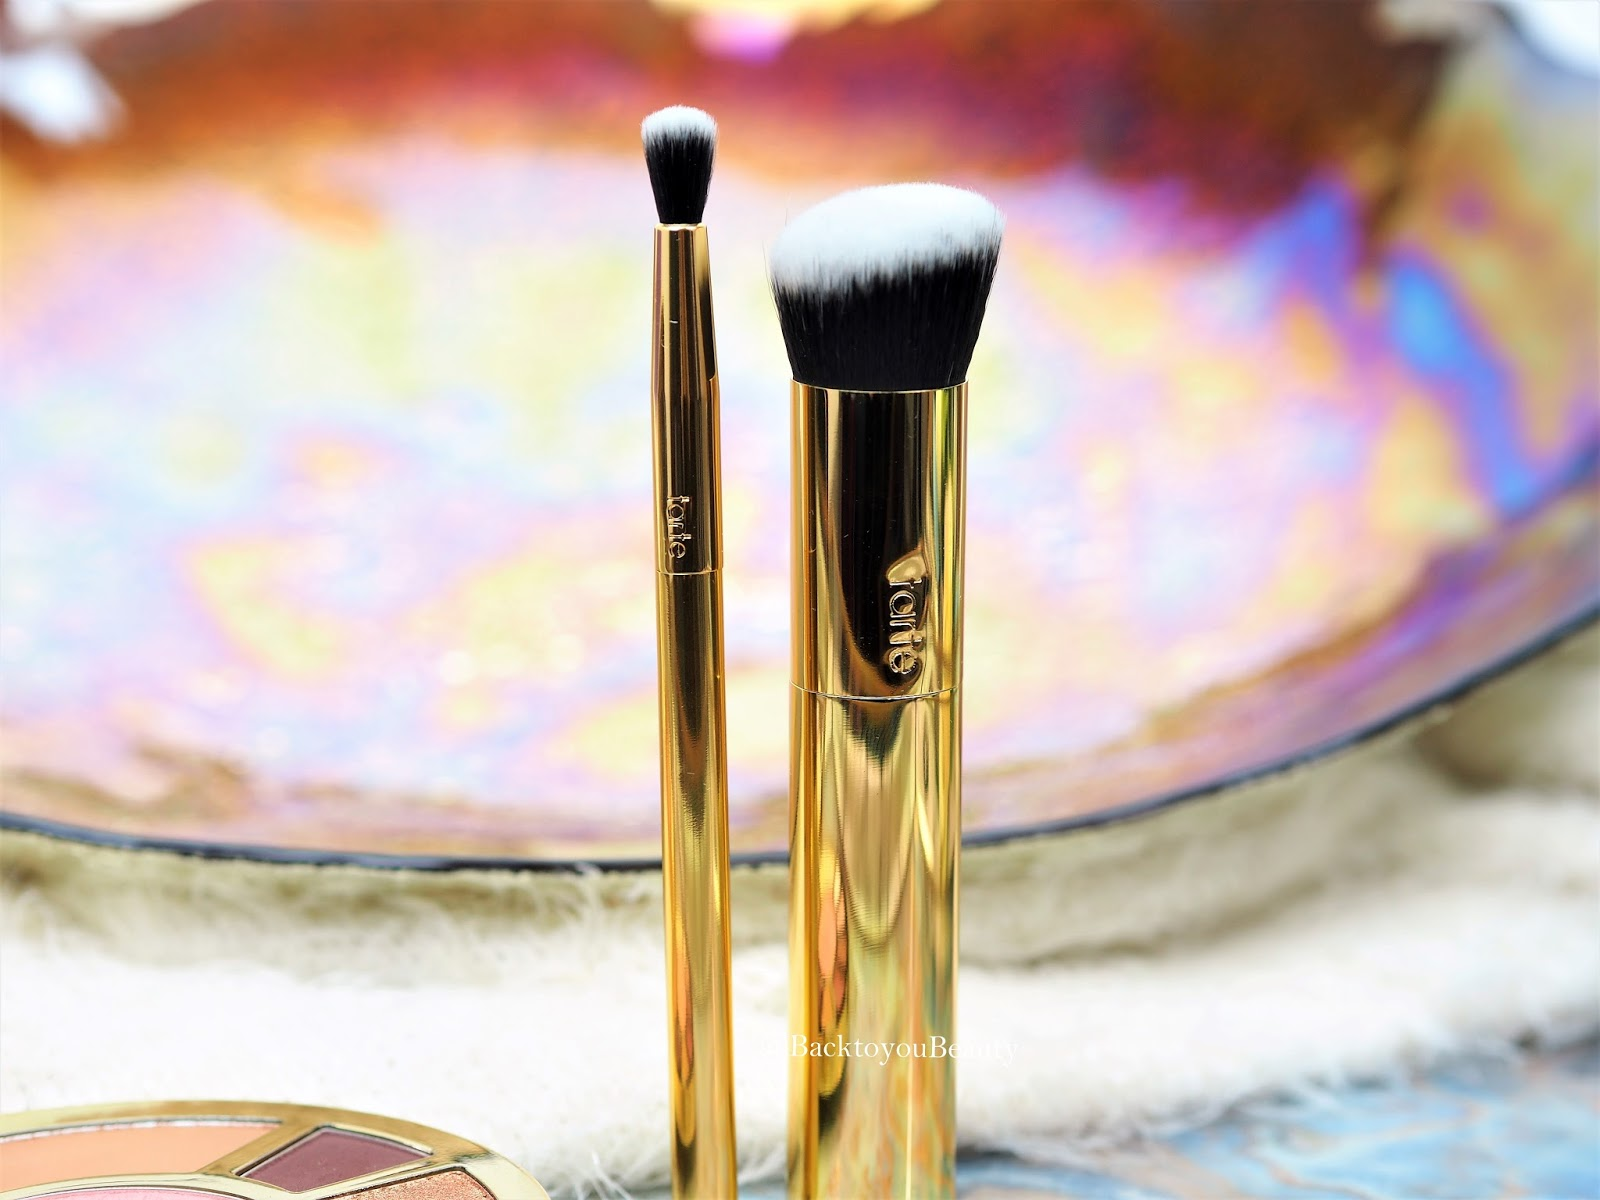 Tarte Make Up Brushes